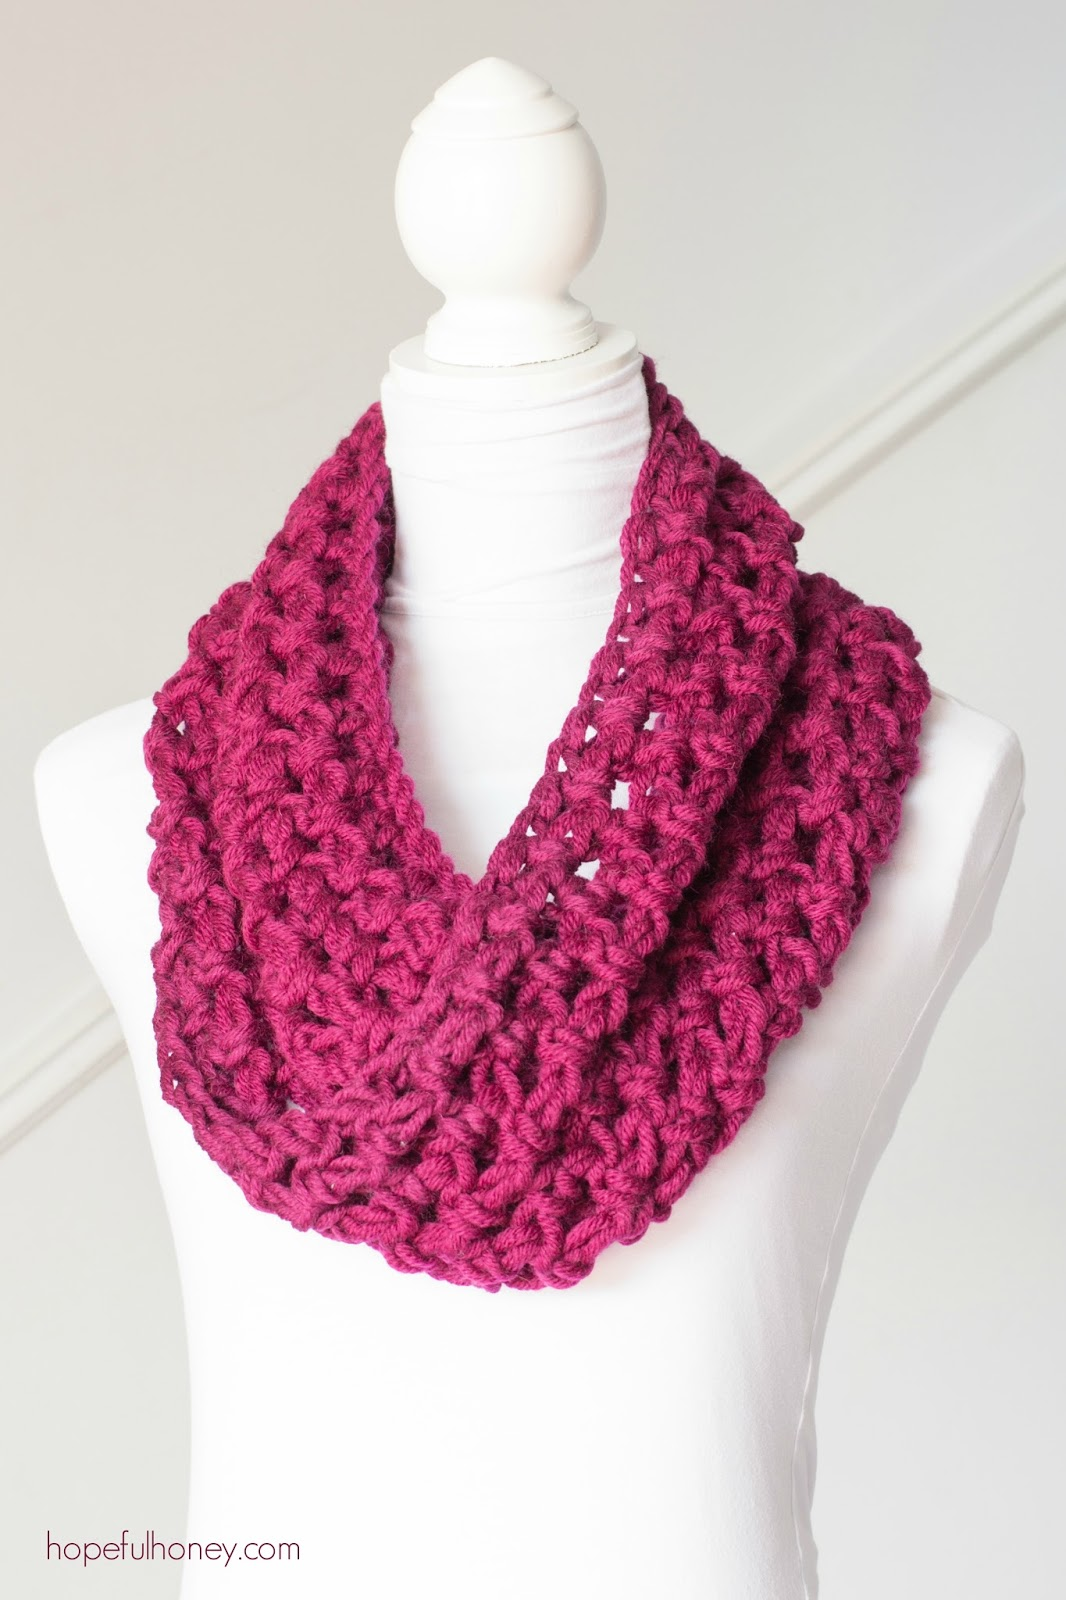 Basic Beginner Crochet Patterns : Hopeful Honey Craft, Crochet, Create: Basic Chunky Cowl ...